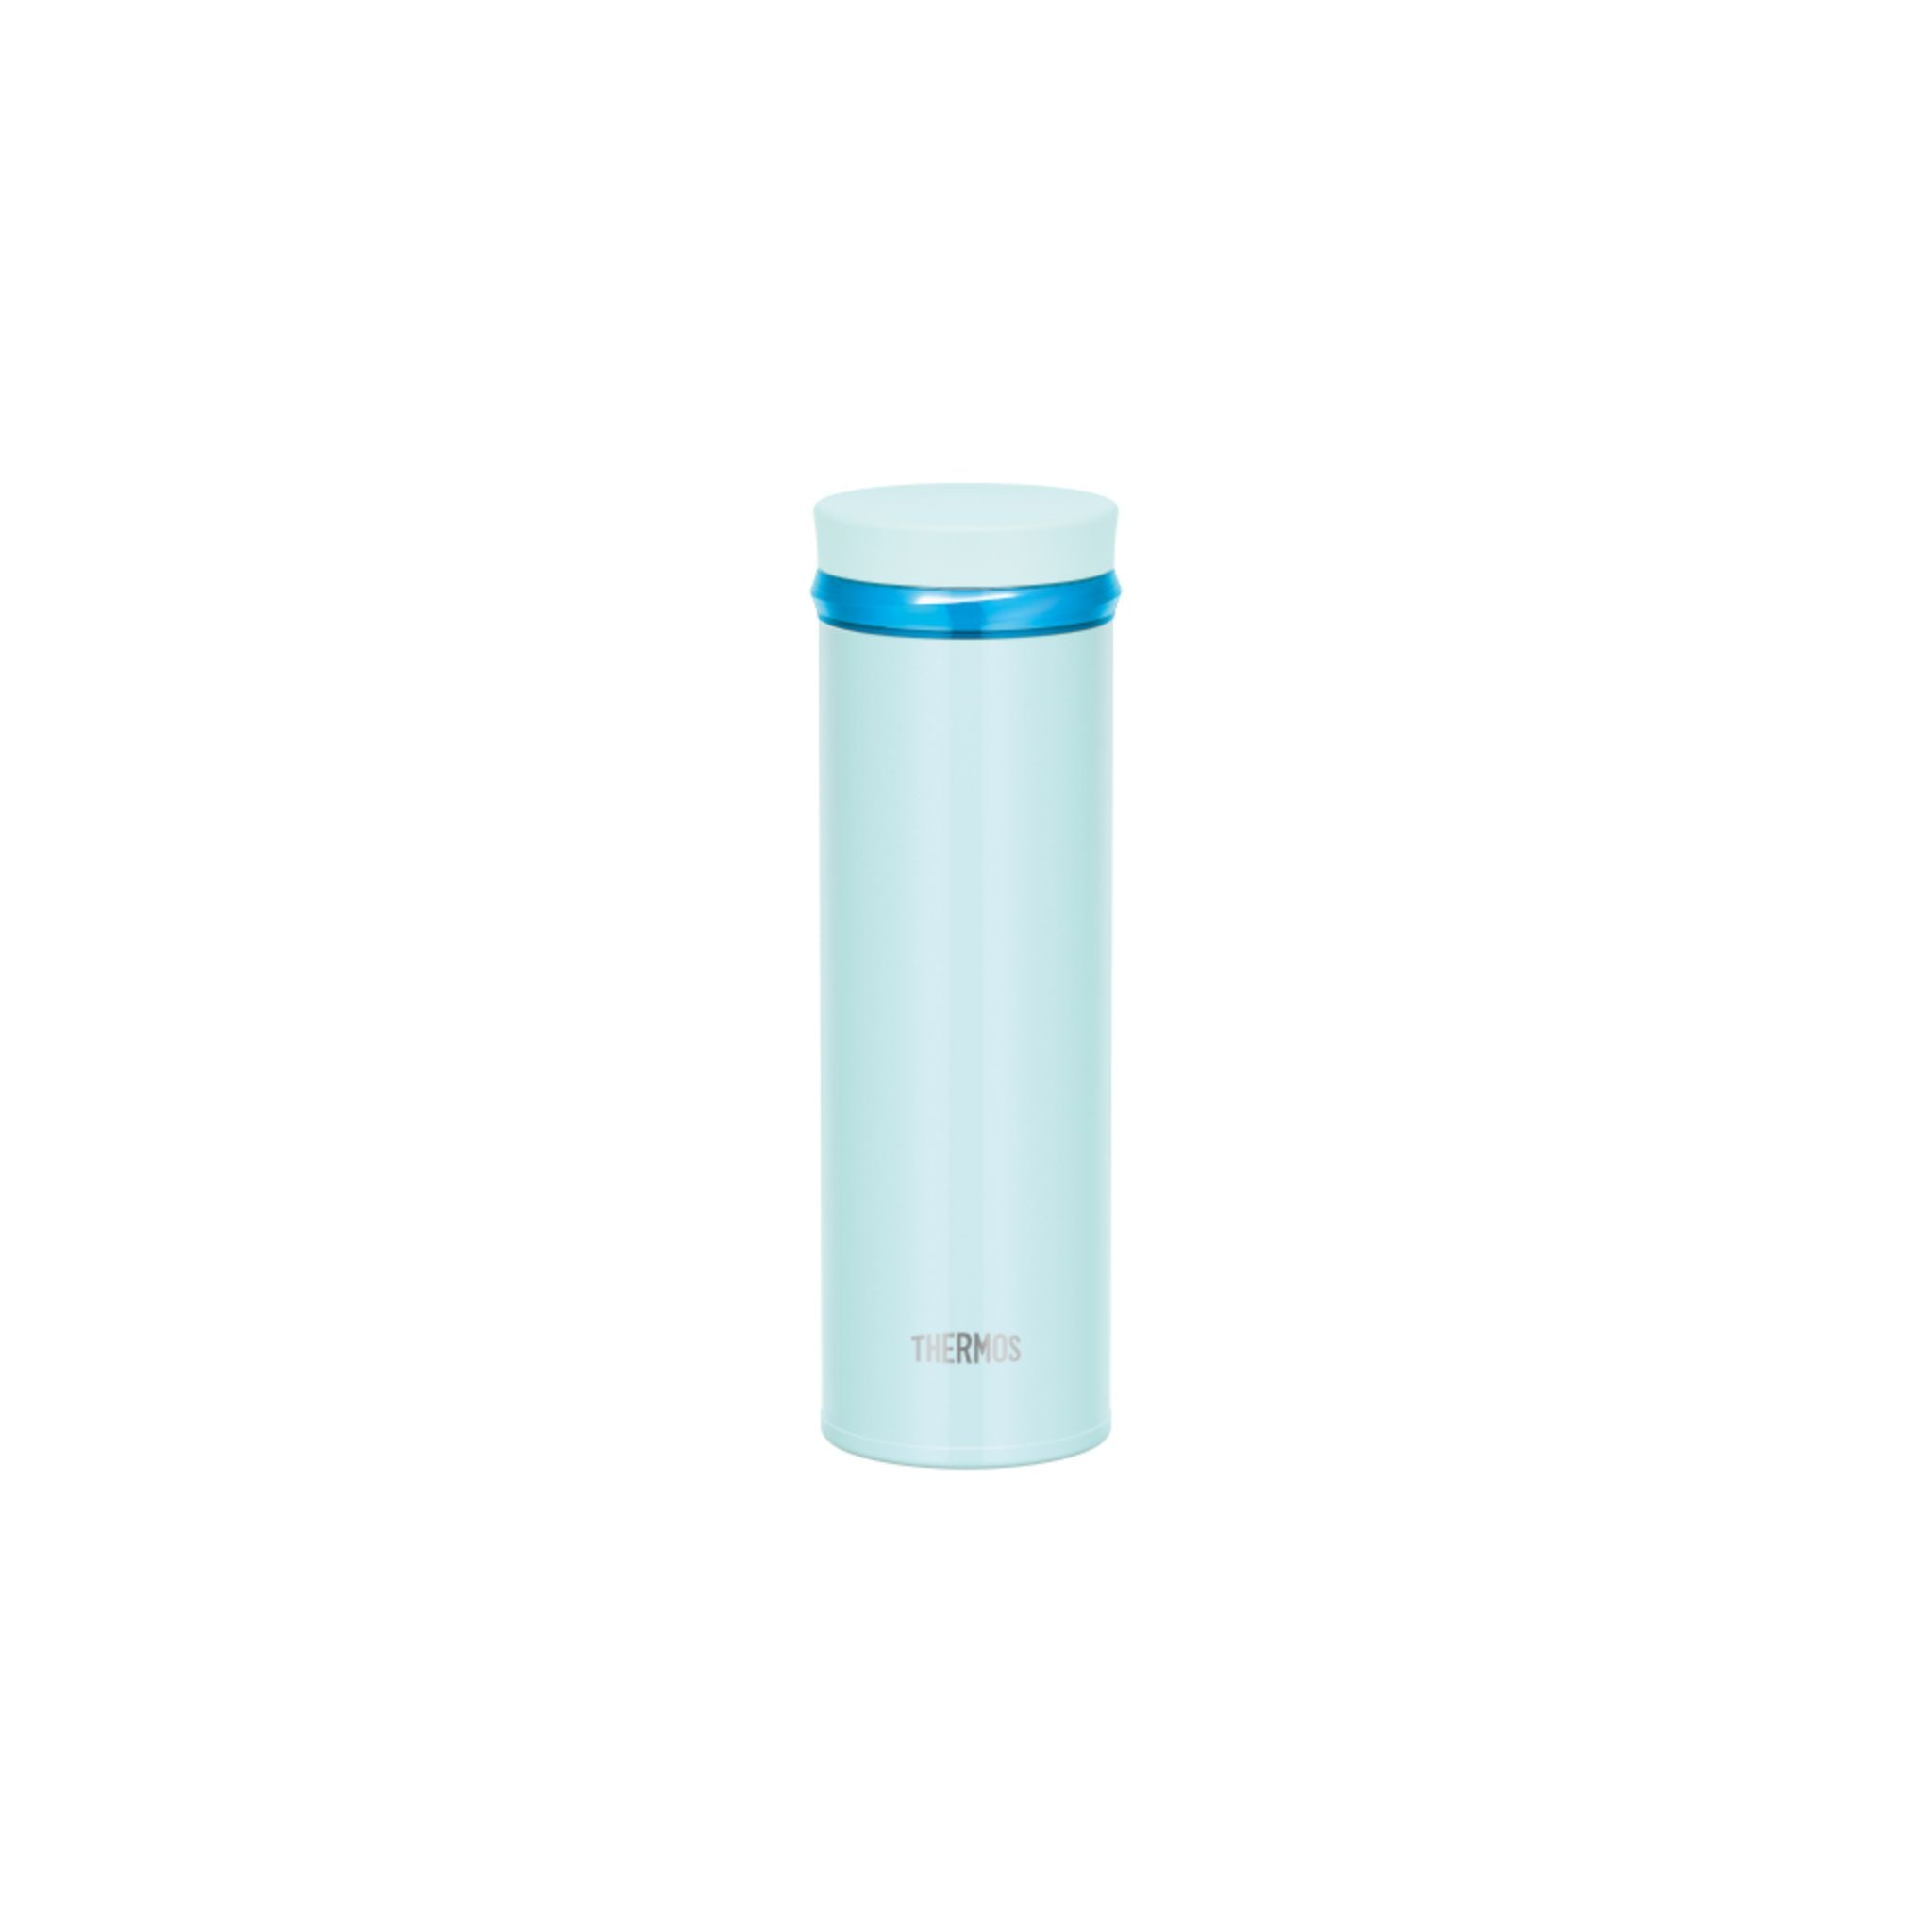 Thermos 0.5L Stainless Steel Vacuum Insulation Tumbler - Shiny Blue